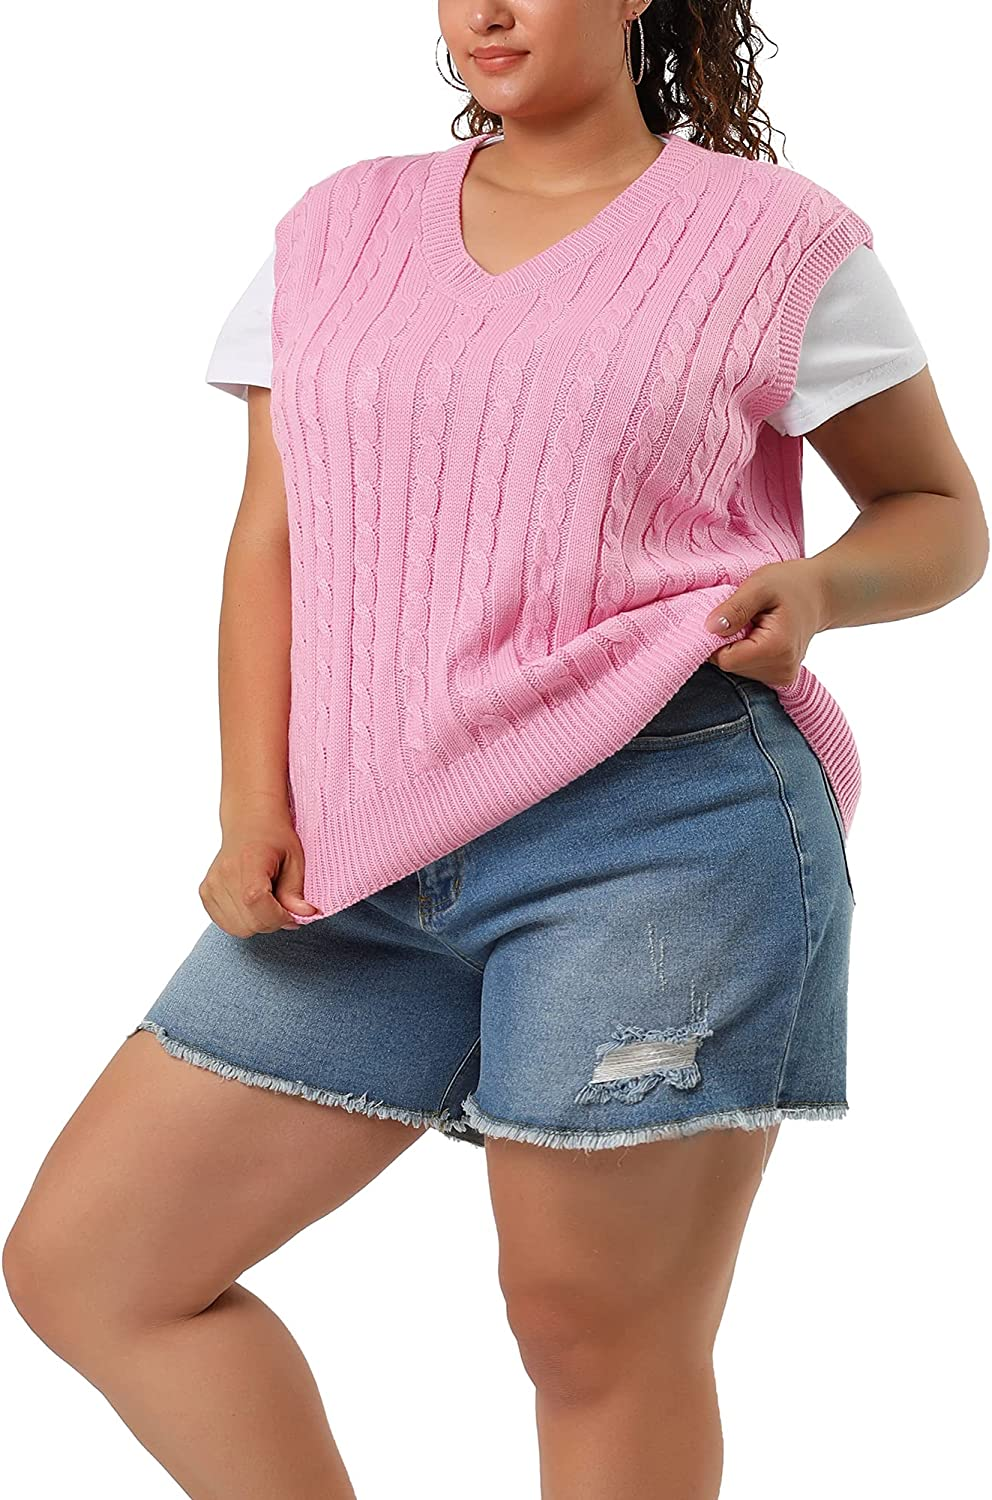 Agnes Orinda Women's Plus Size Sweater Vest V Neck Cable Knit Vests Preppy Style Sweater Sleeveless Pullover Sweater Vests